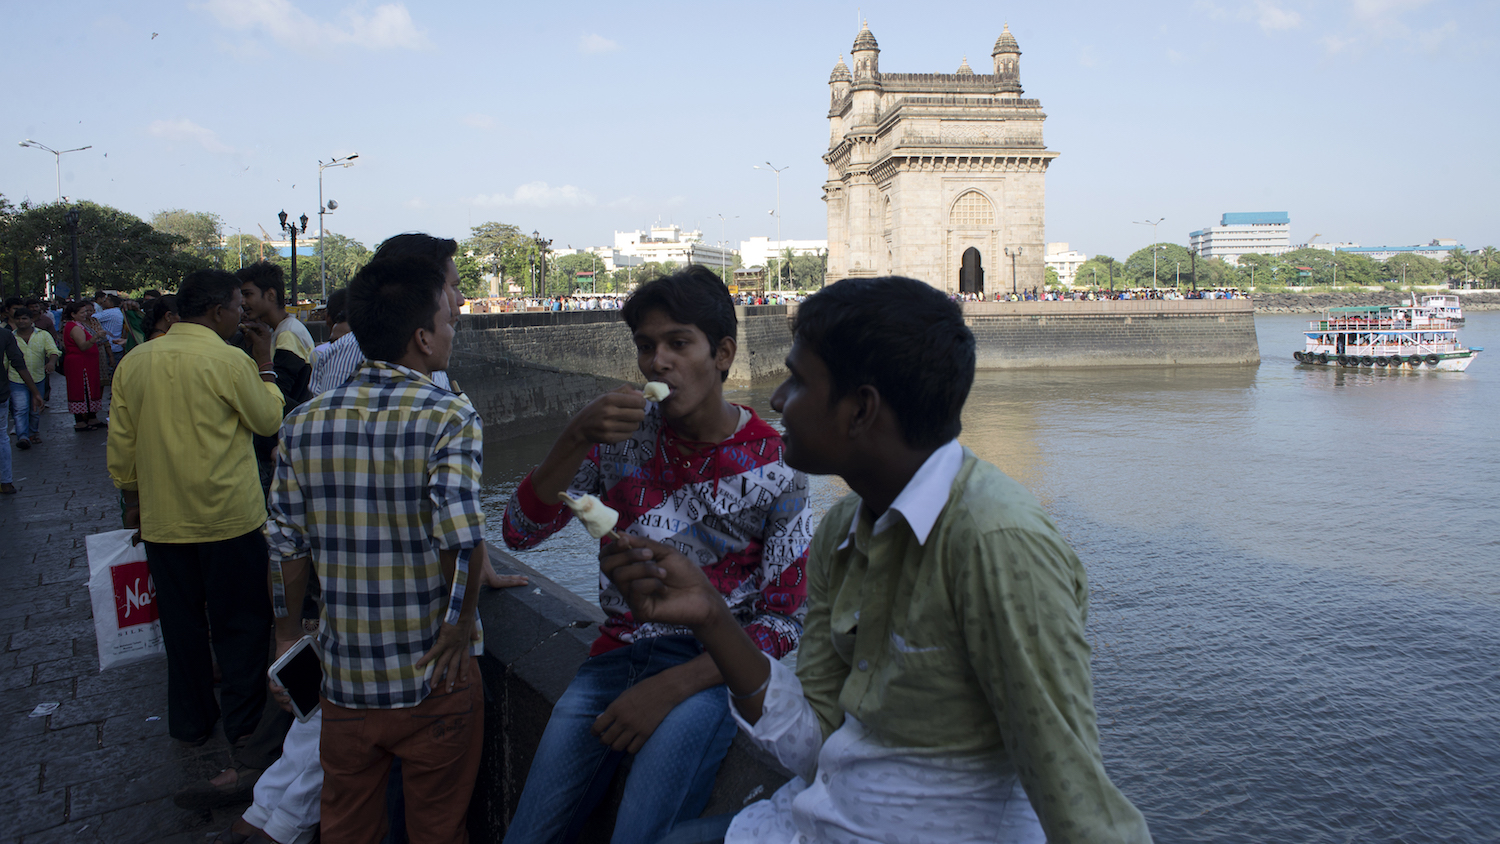 Ice cream sales in India